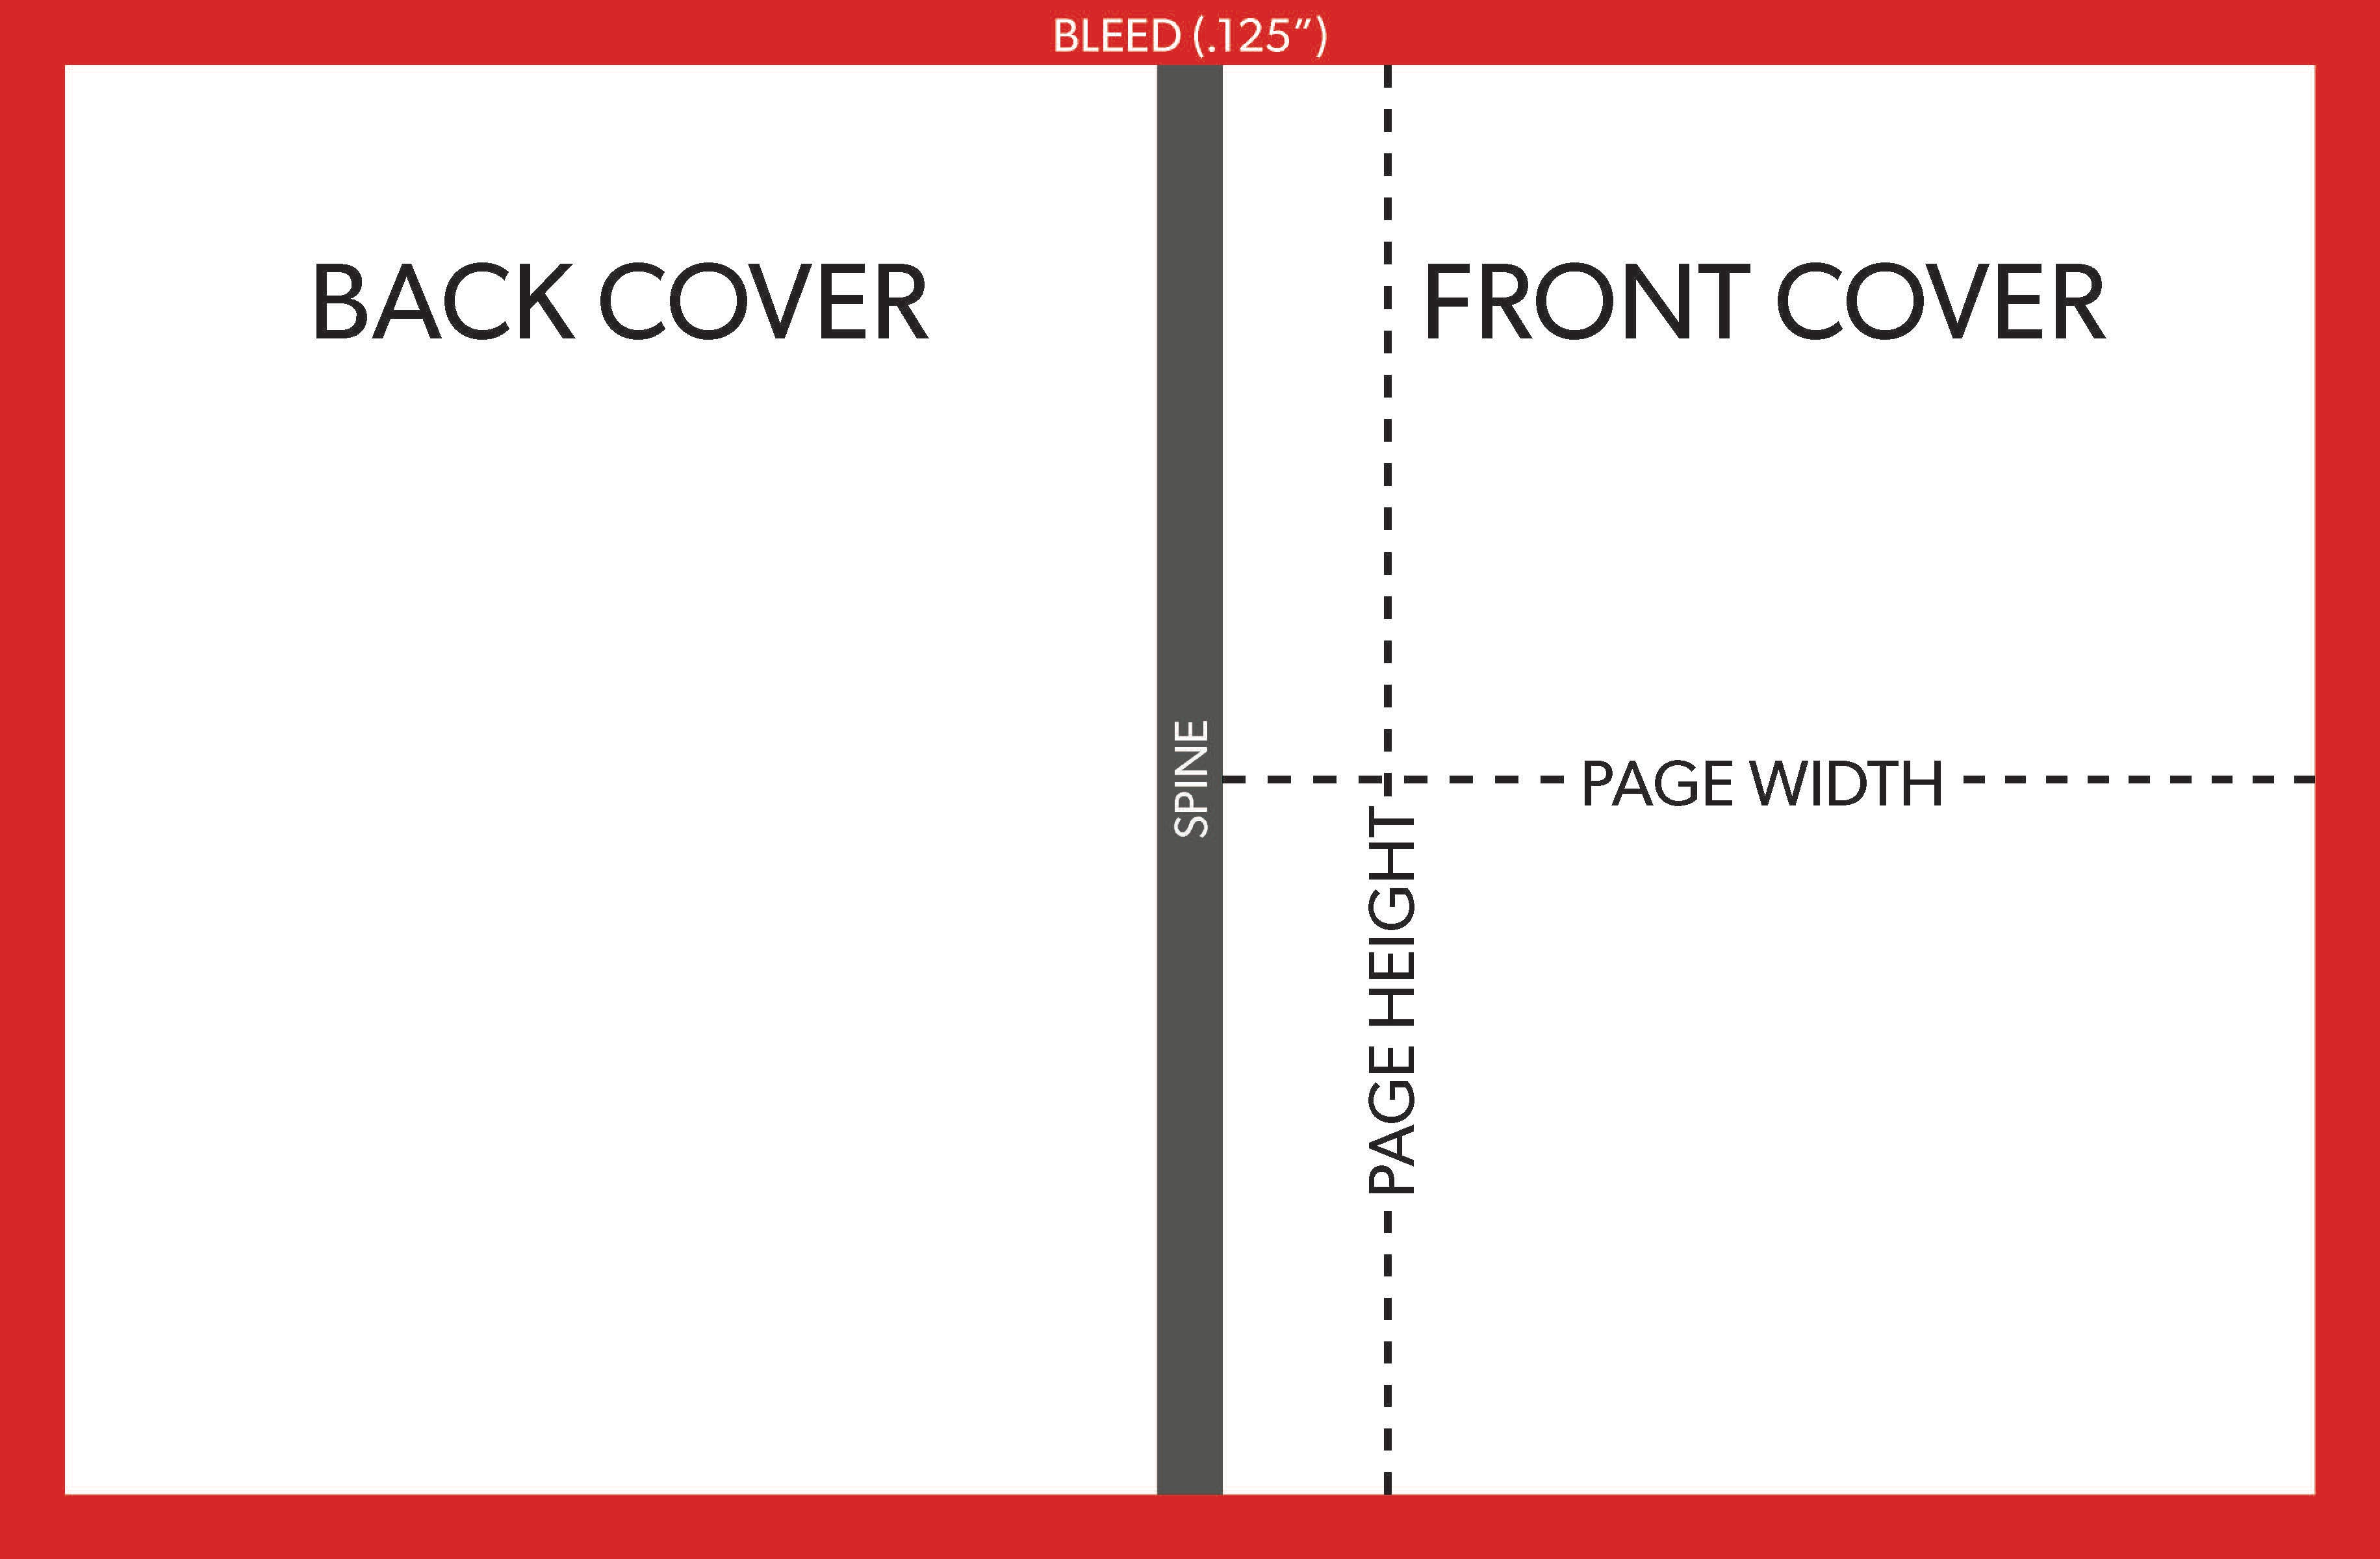 Book Cover Spine Template : Board book cover printing template explained